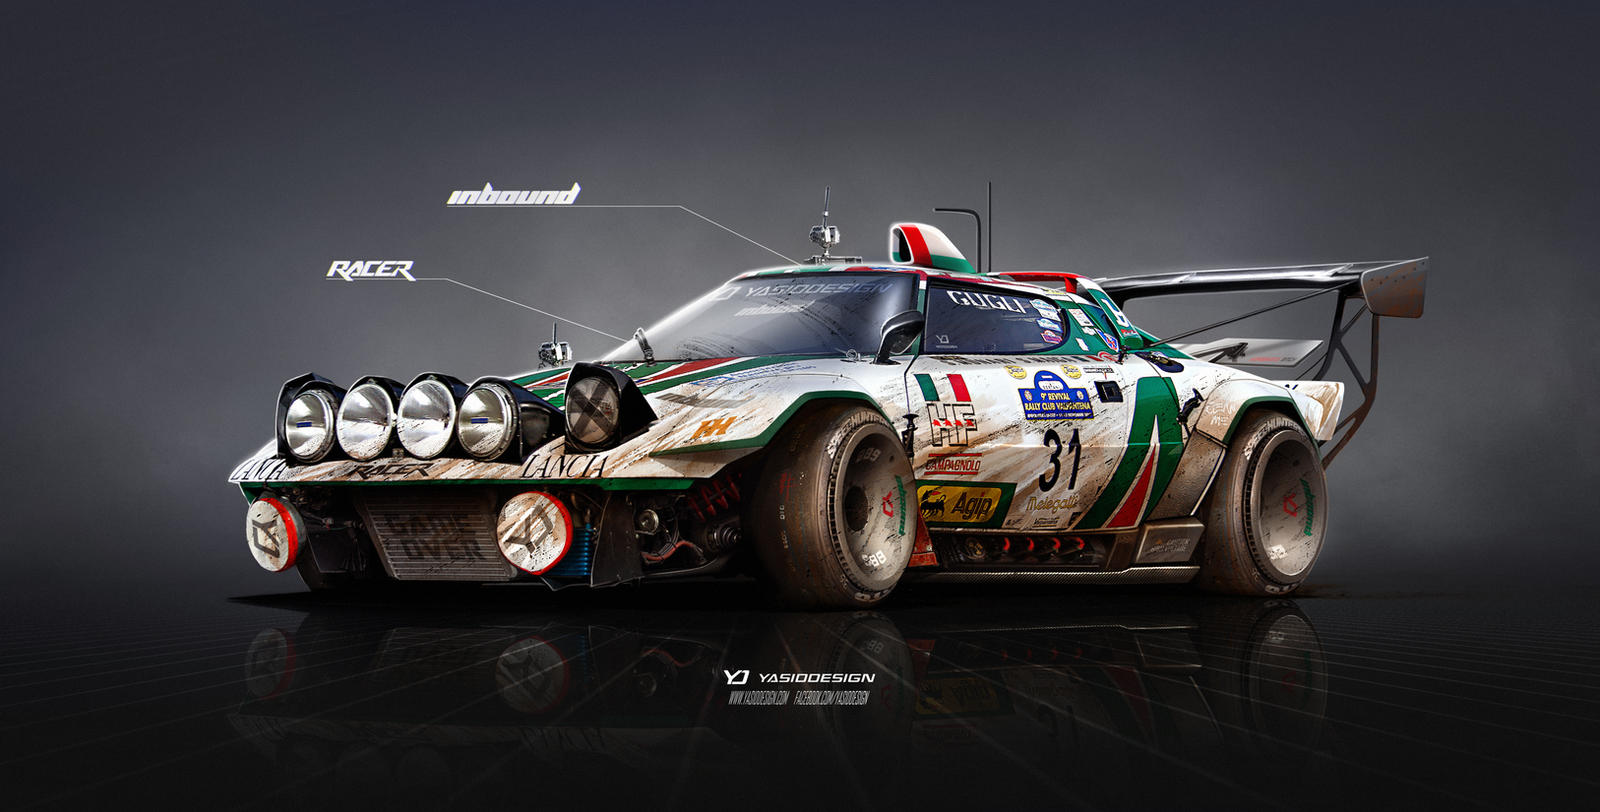 Lancia Stratos On Steroids Inbound Racer By Yasiddesign On Deviantart